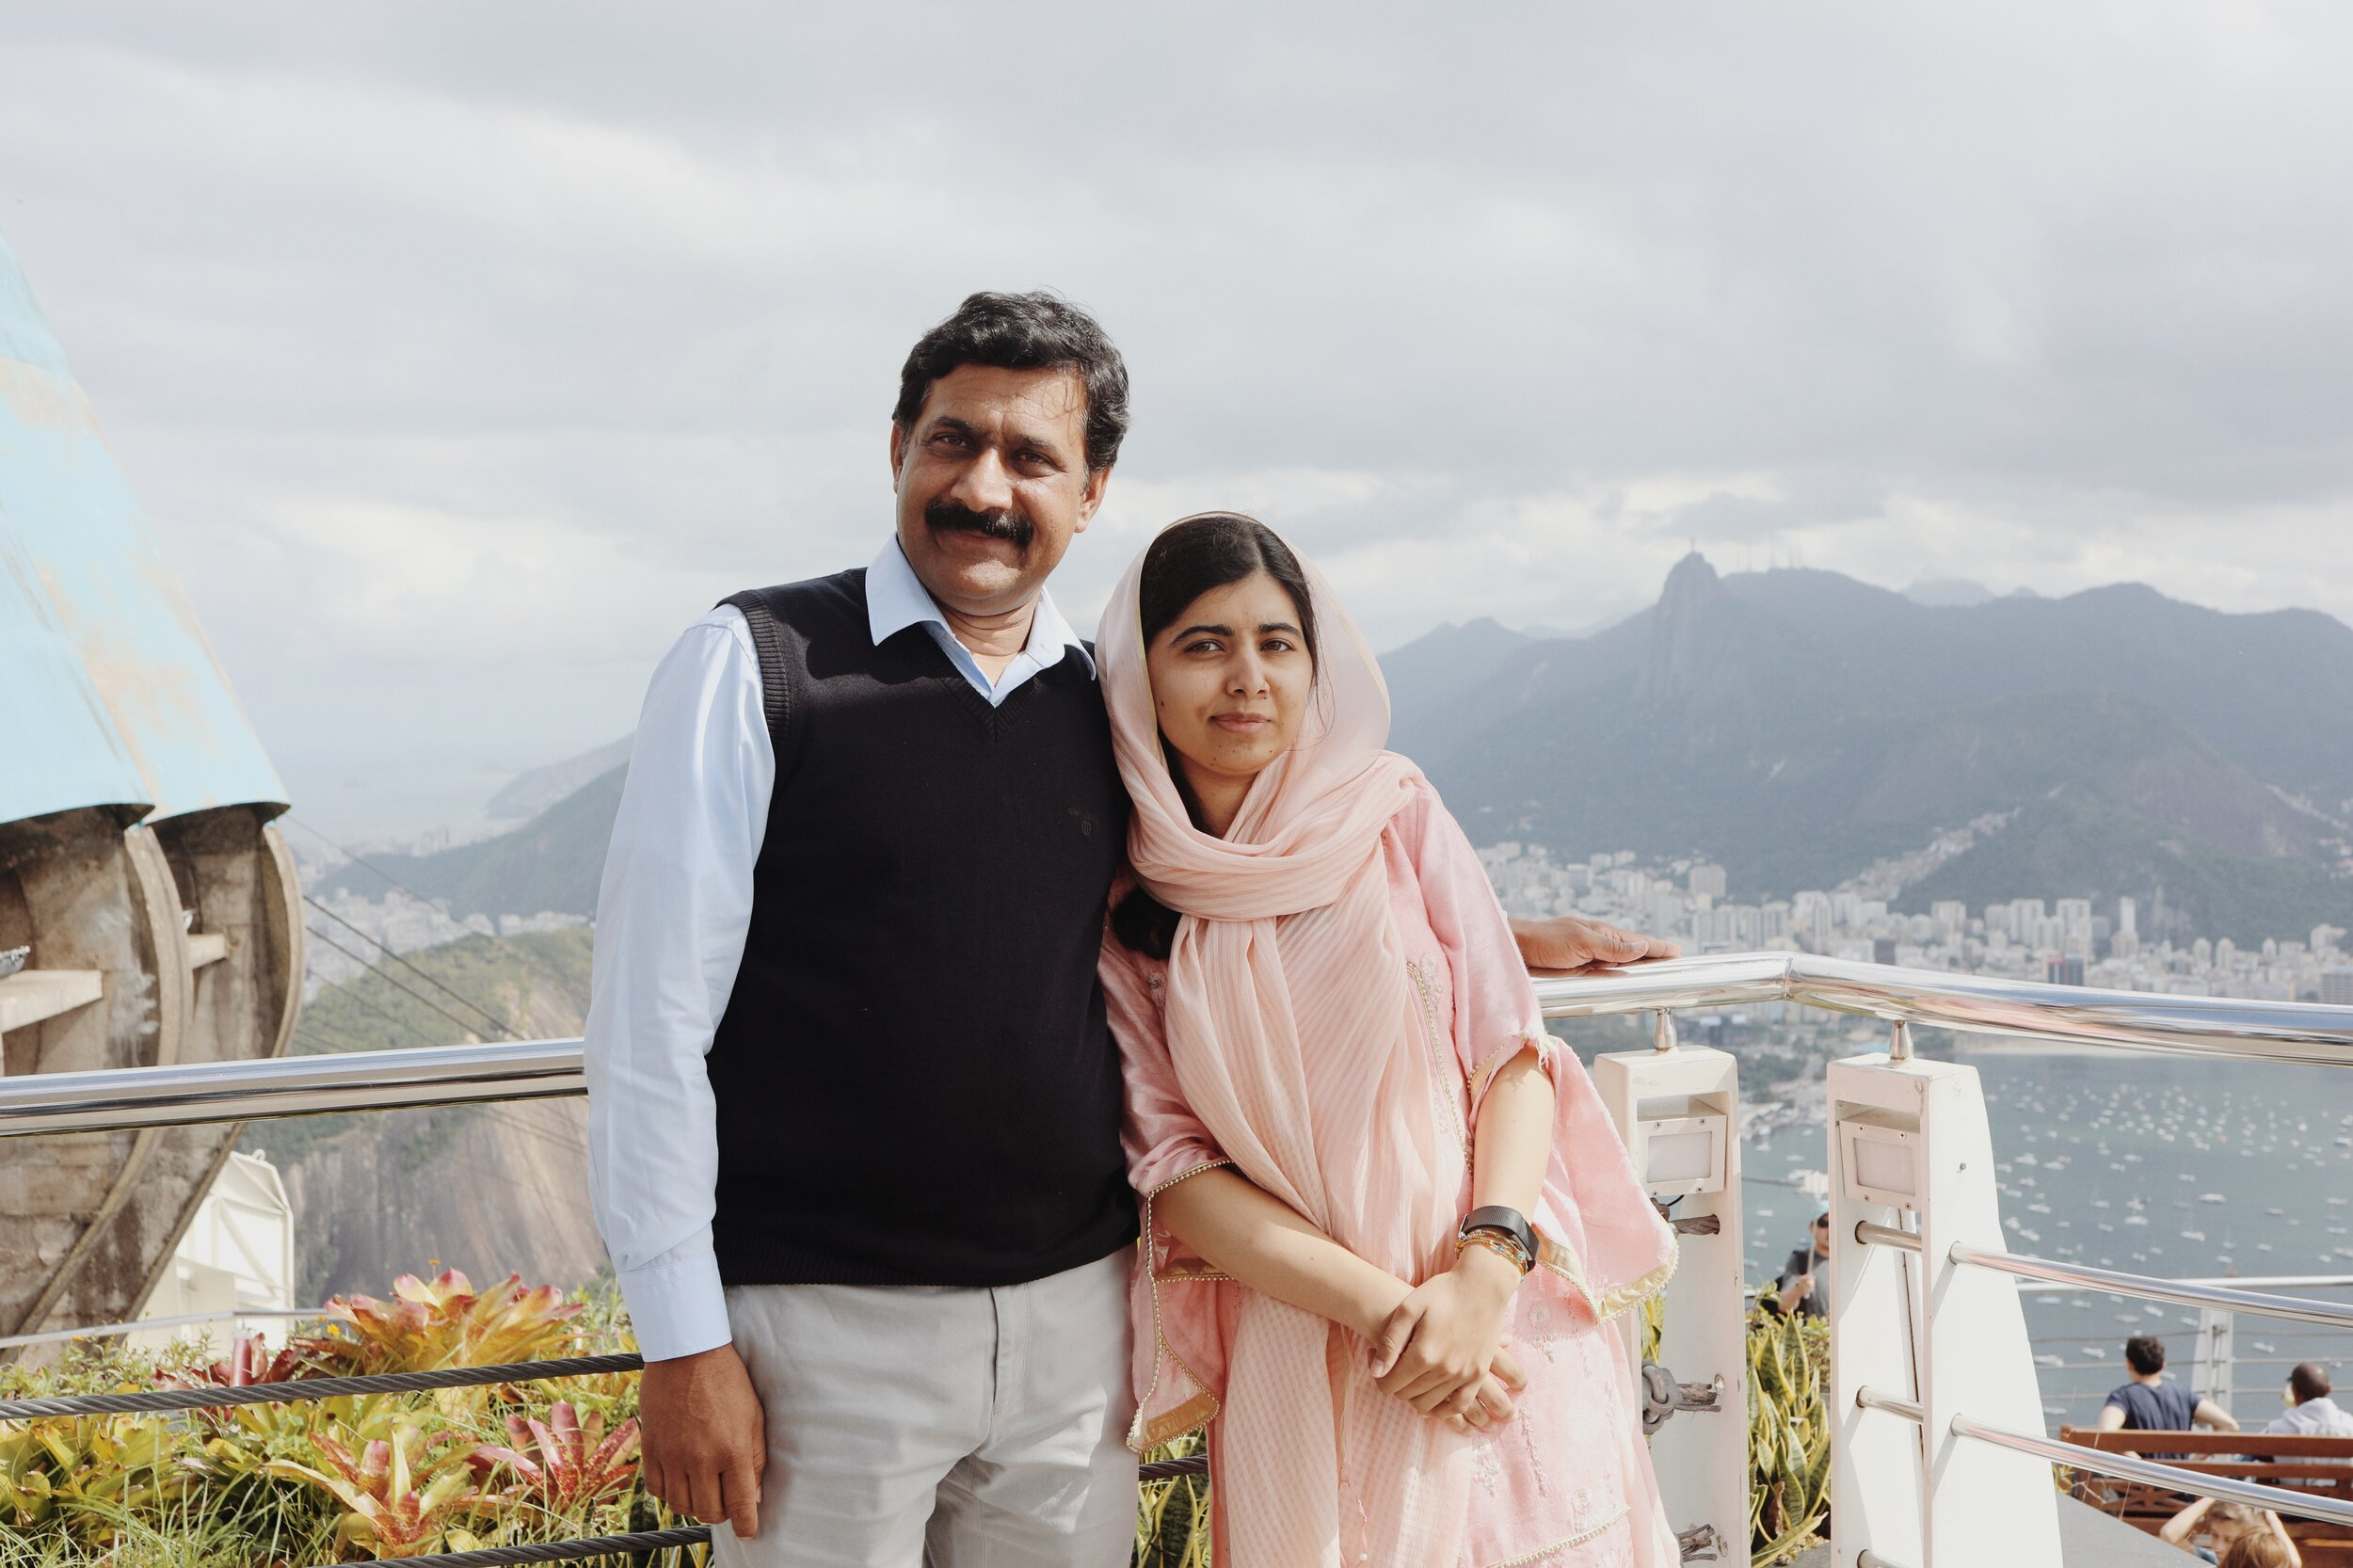 Photo by Luisa Dorr for Malala Fund